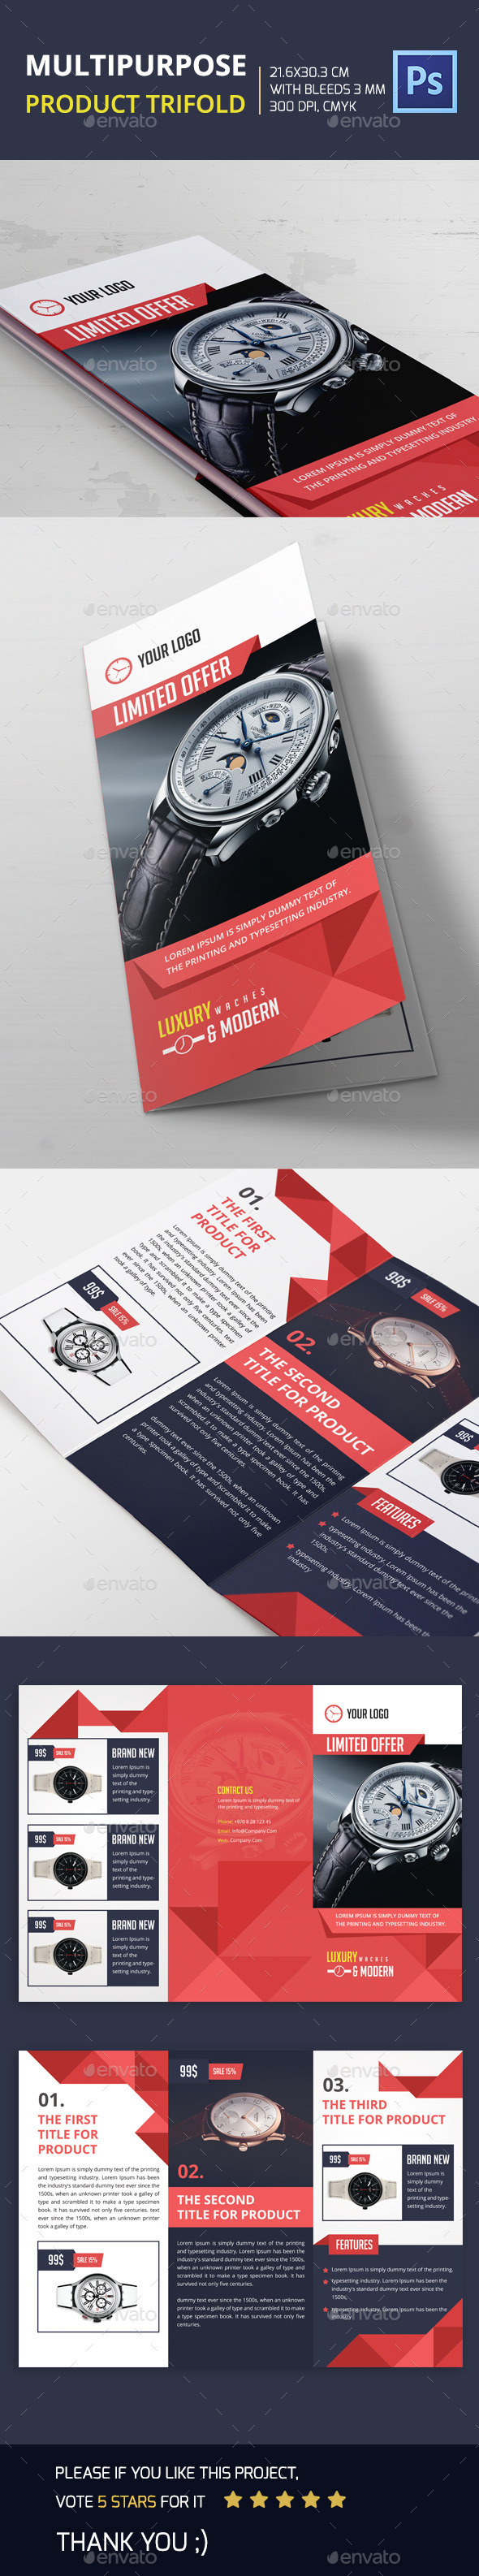 GraphicRiver Multipurpose Product Trifold 11869466